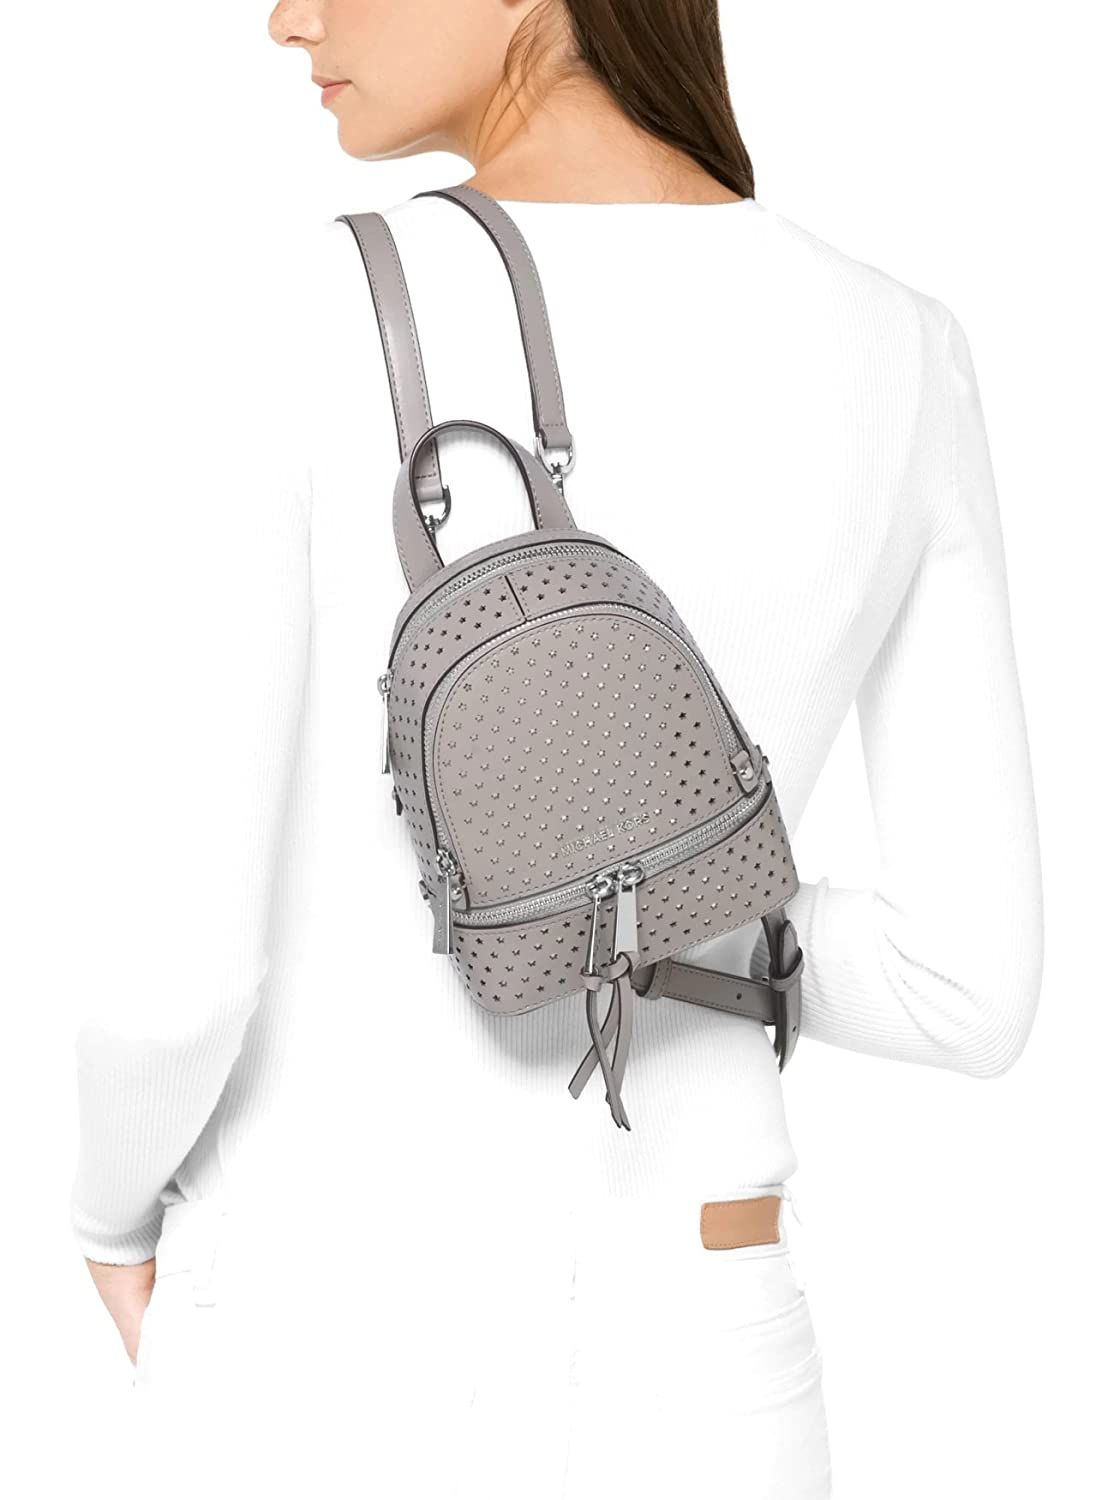 b37dbbfcce94 MICHAEL Michael Kors Rhea Mini Perforated Leather Backpack in Pearl Grey:  Amazon.co.uk: Shoes & Bags